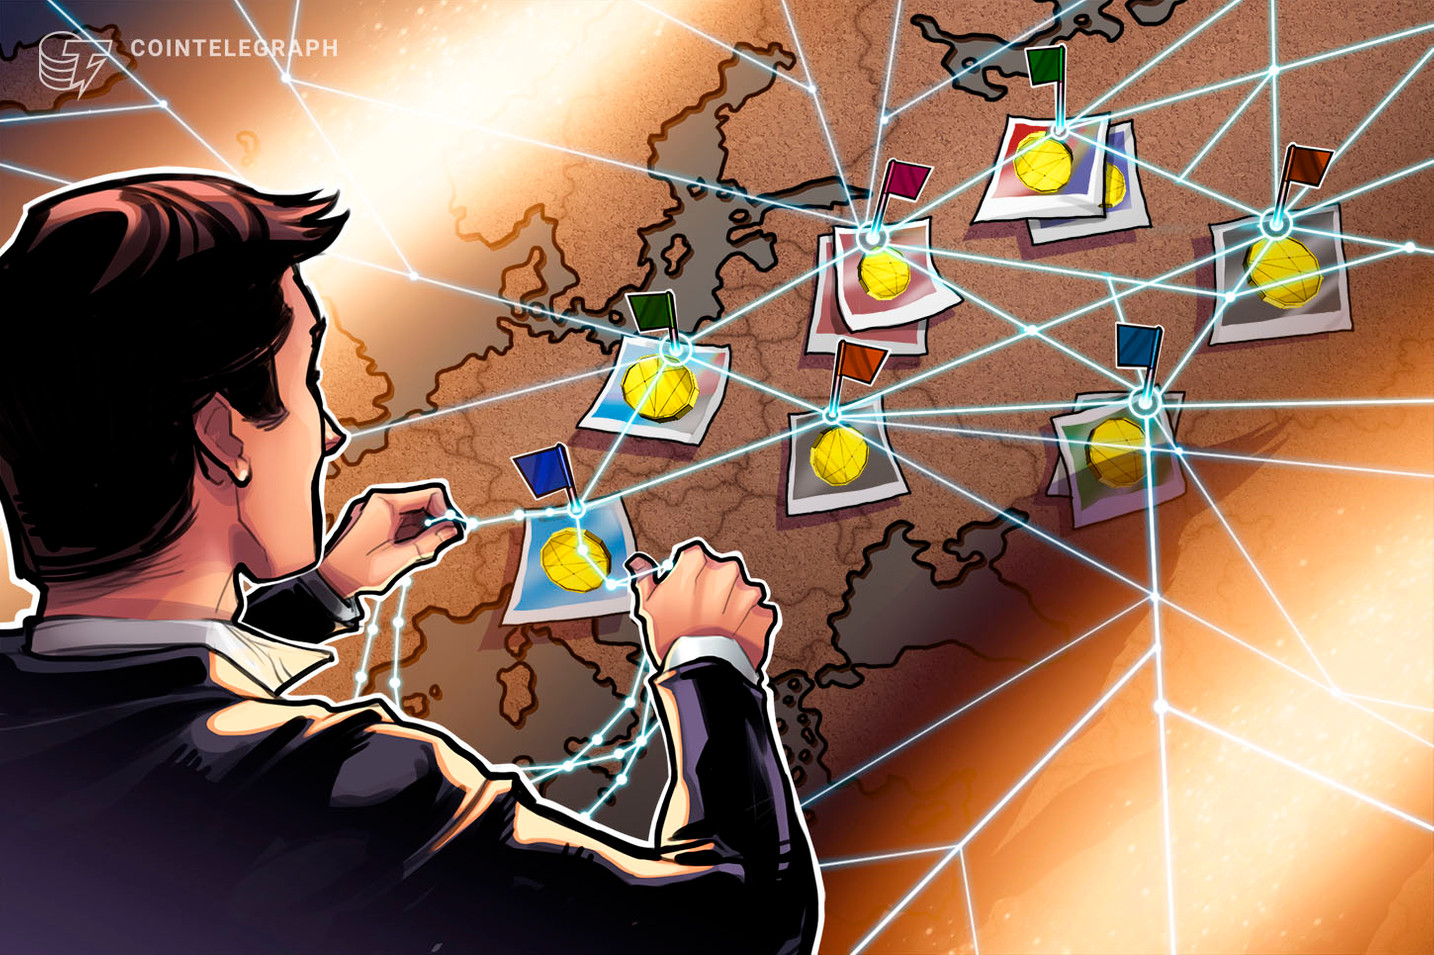 South Korean Post Teams Up With Blockchain Firm Coinplug to Apply Blockchain